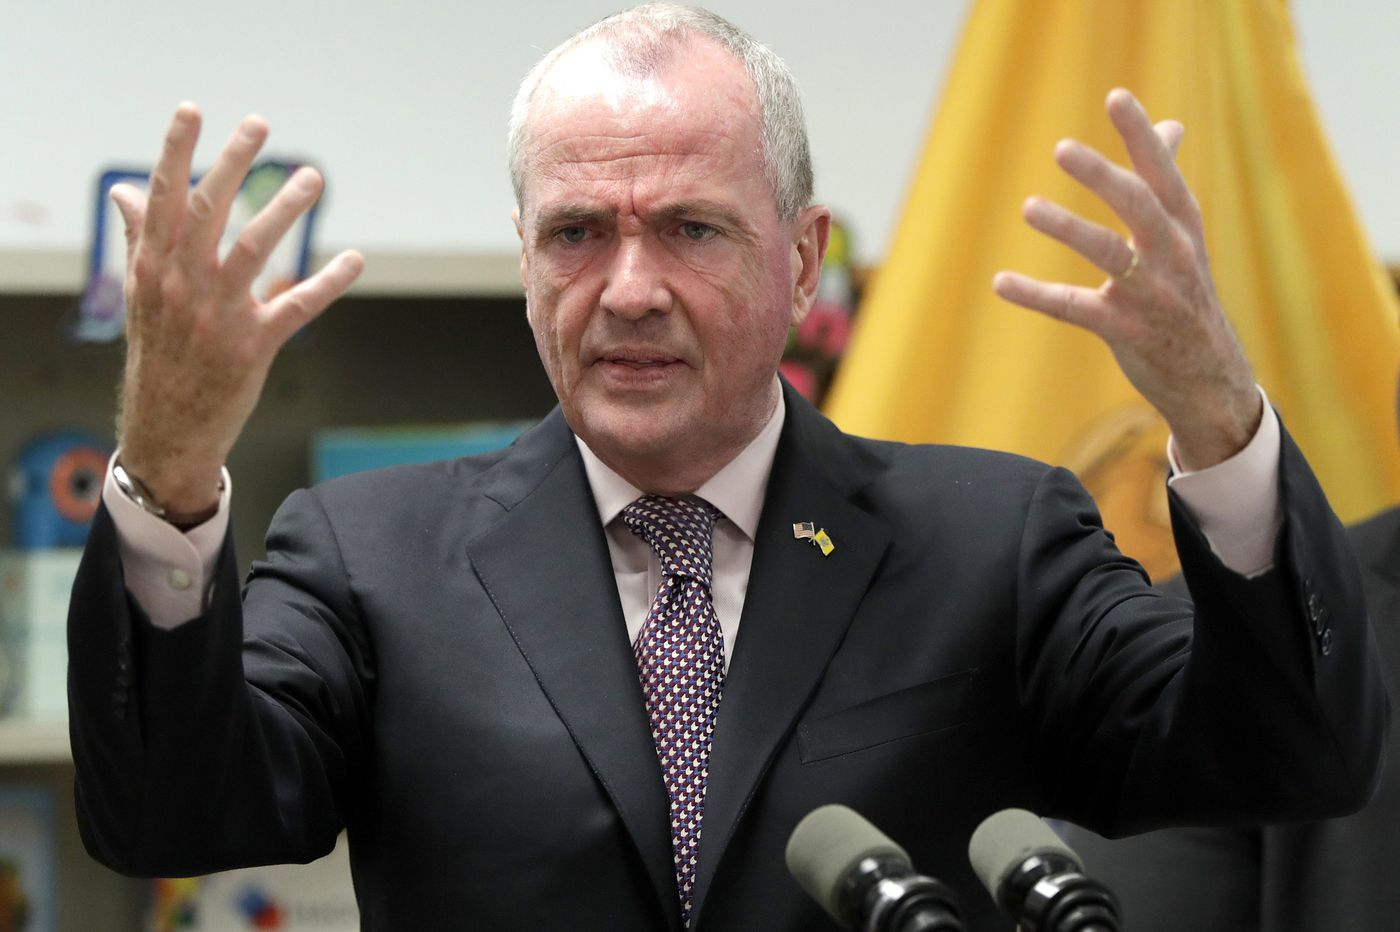 N.J. Gov. Murphy calls for resignation of sheriff for racist remarks about African Americans, AG, and marijuana